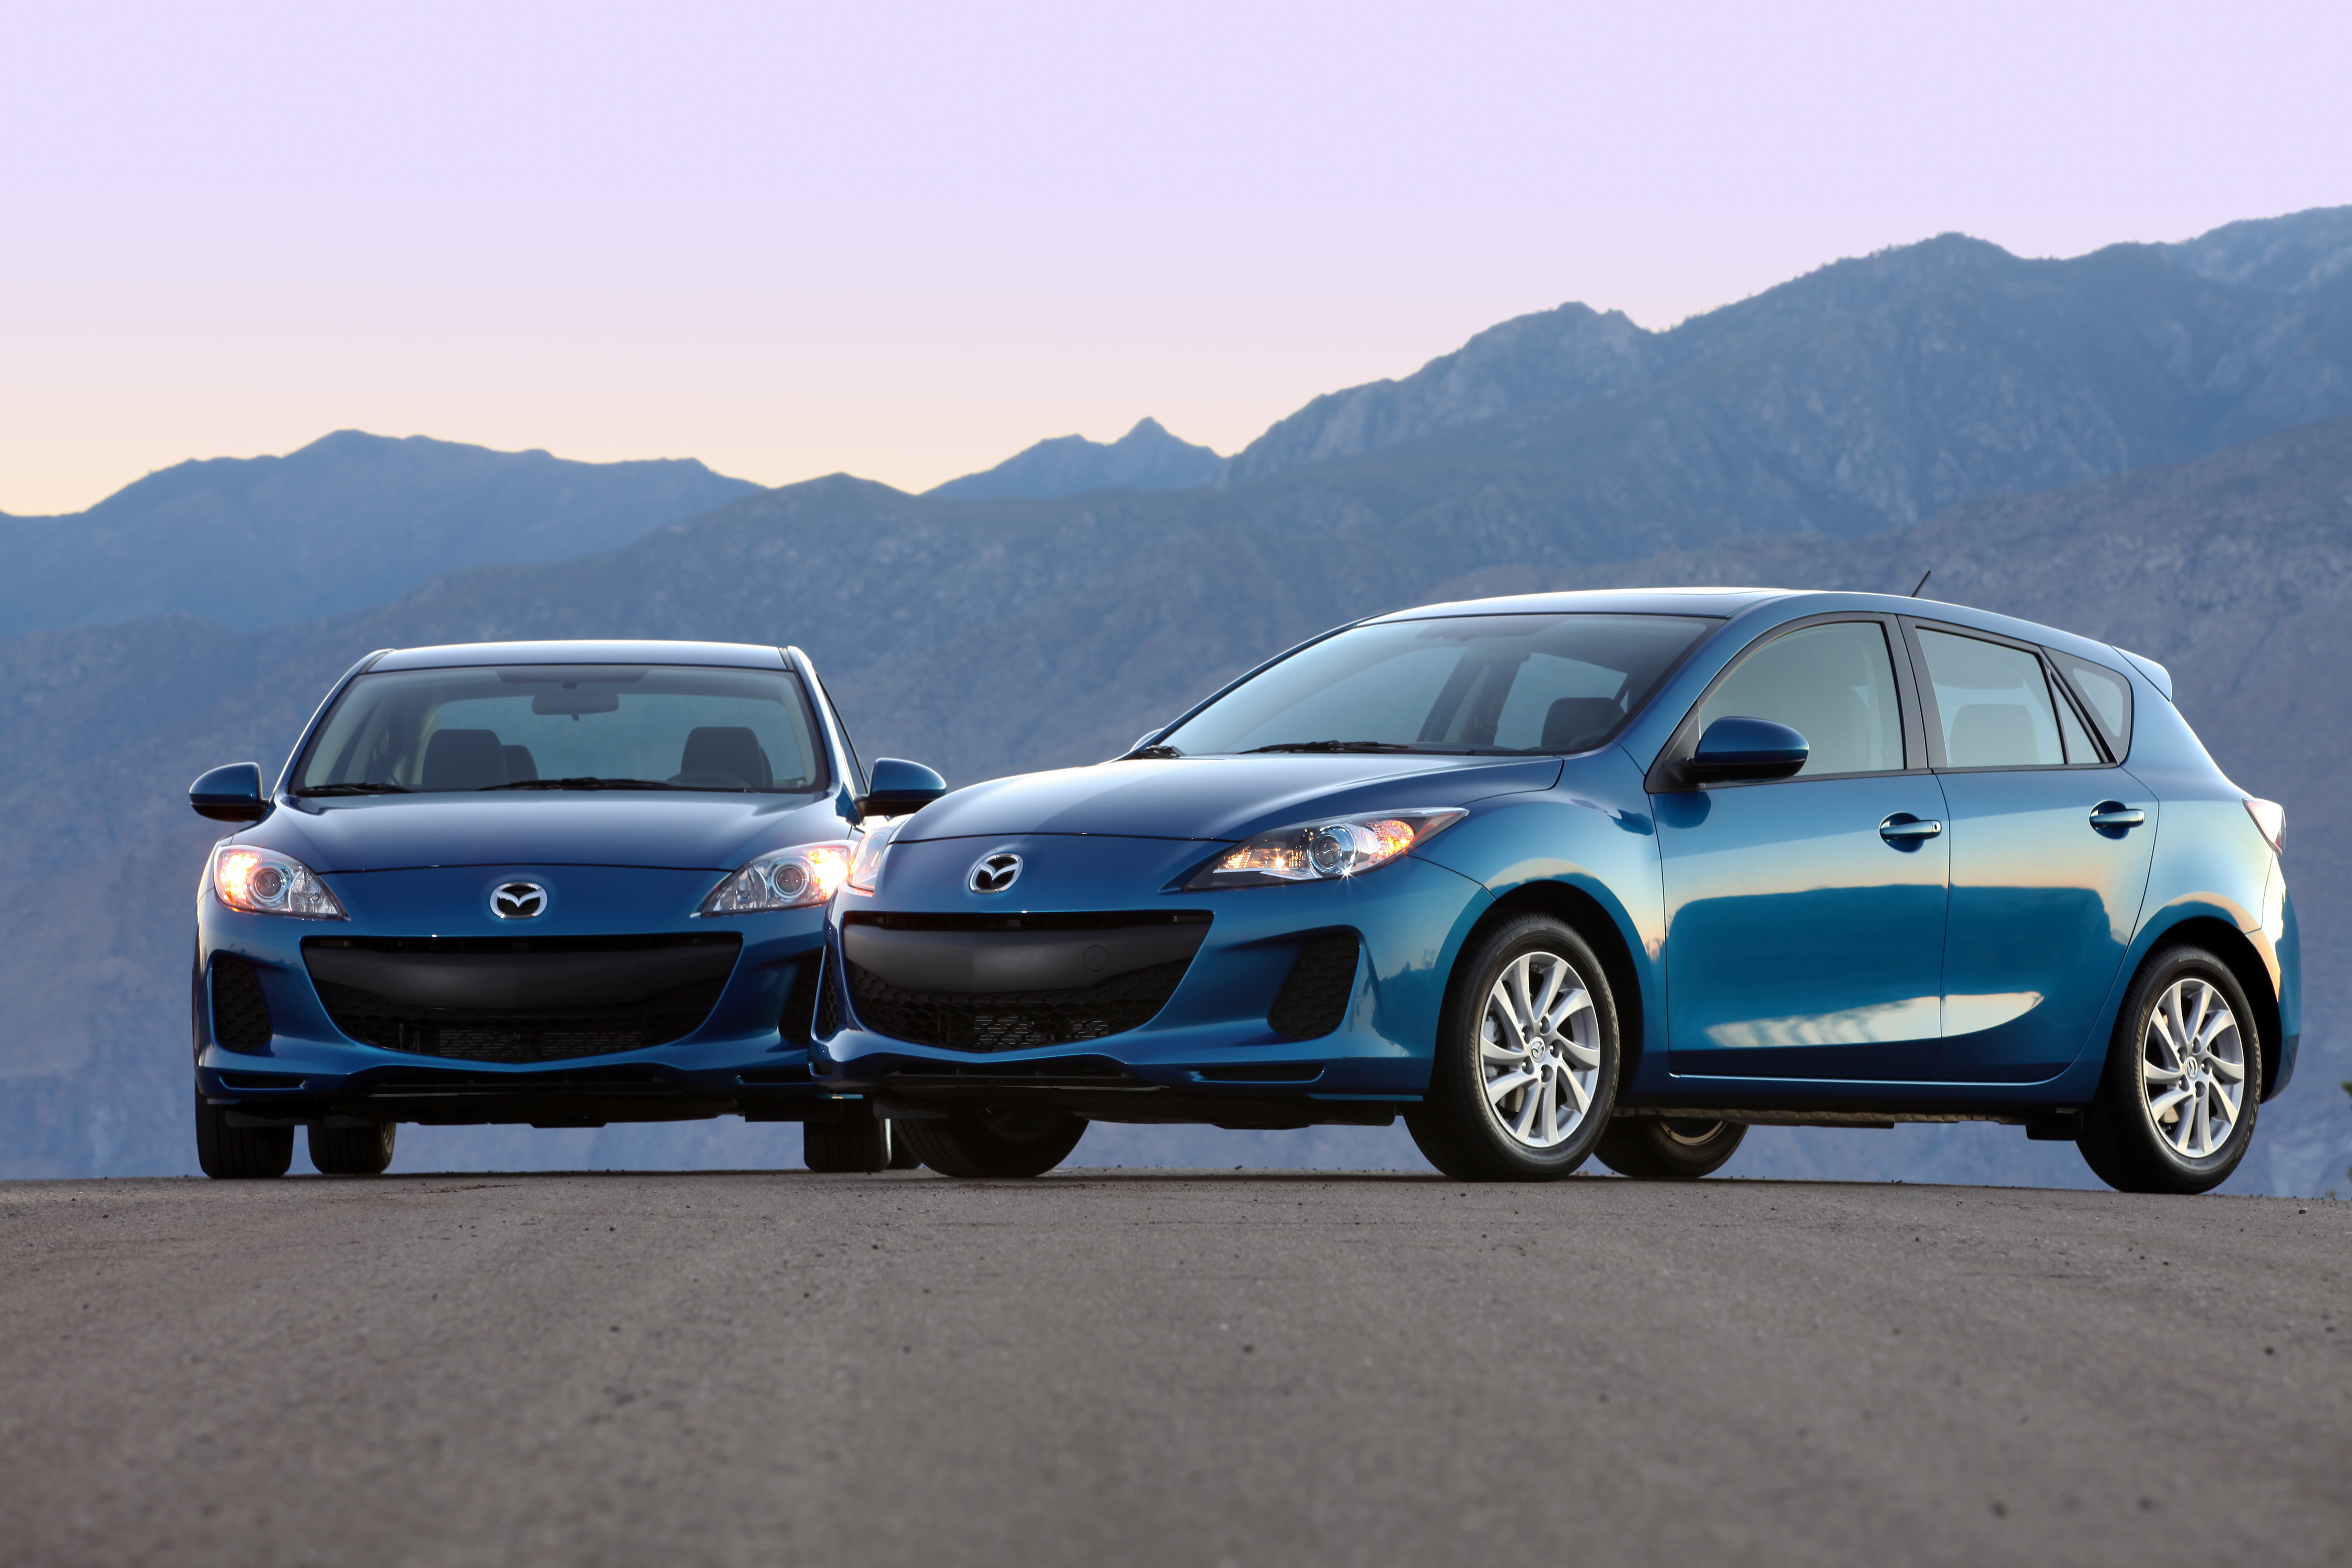 2012 Mazda3 With SKYACTIV Technology Review And Roadtest By Larry Nutson  +VIDEO